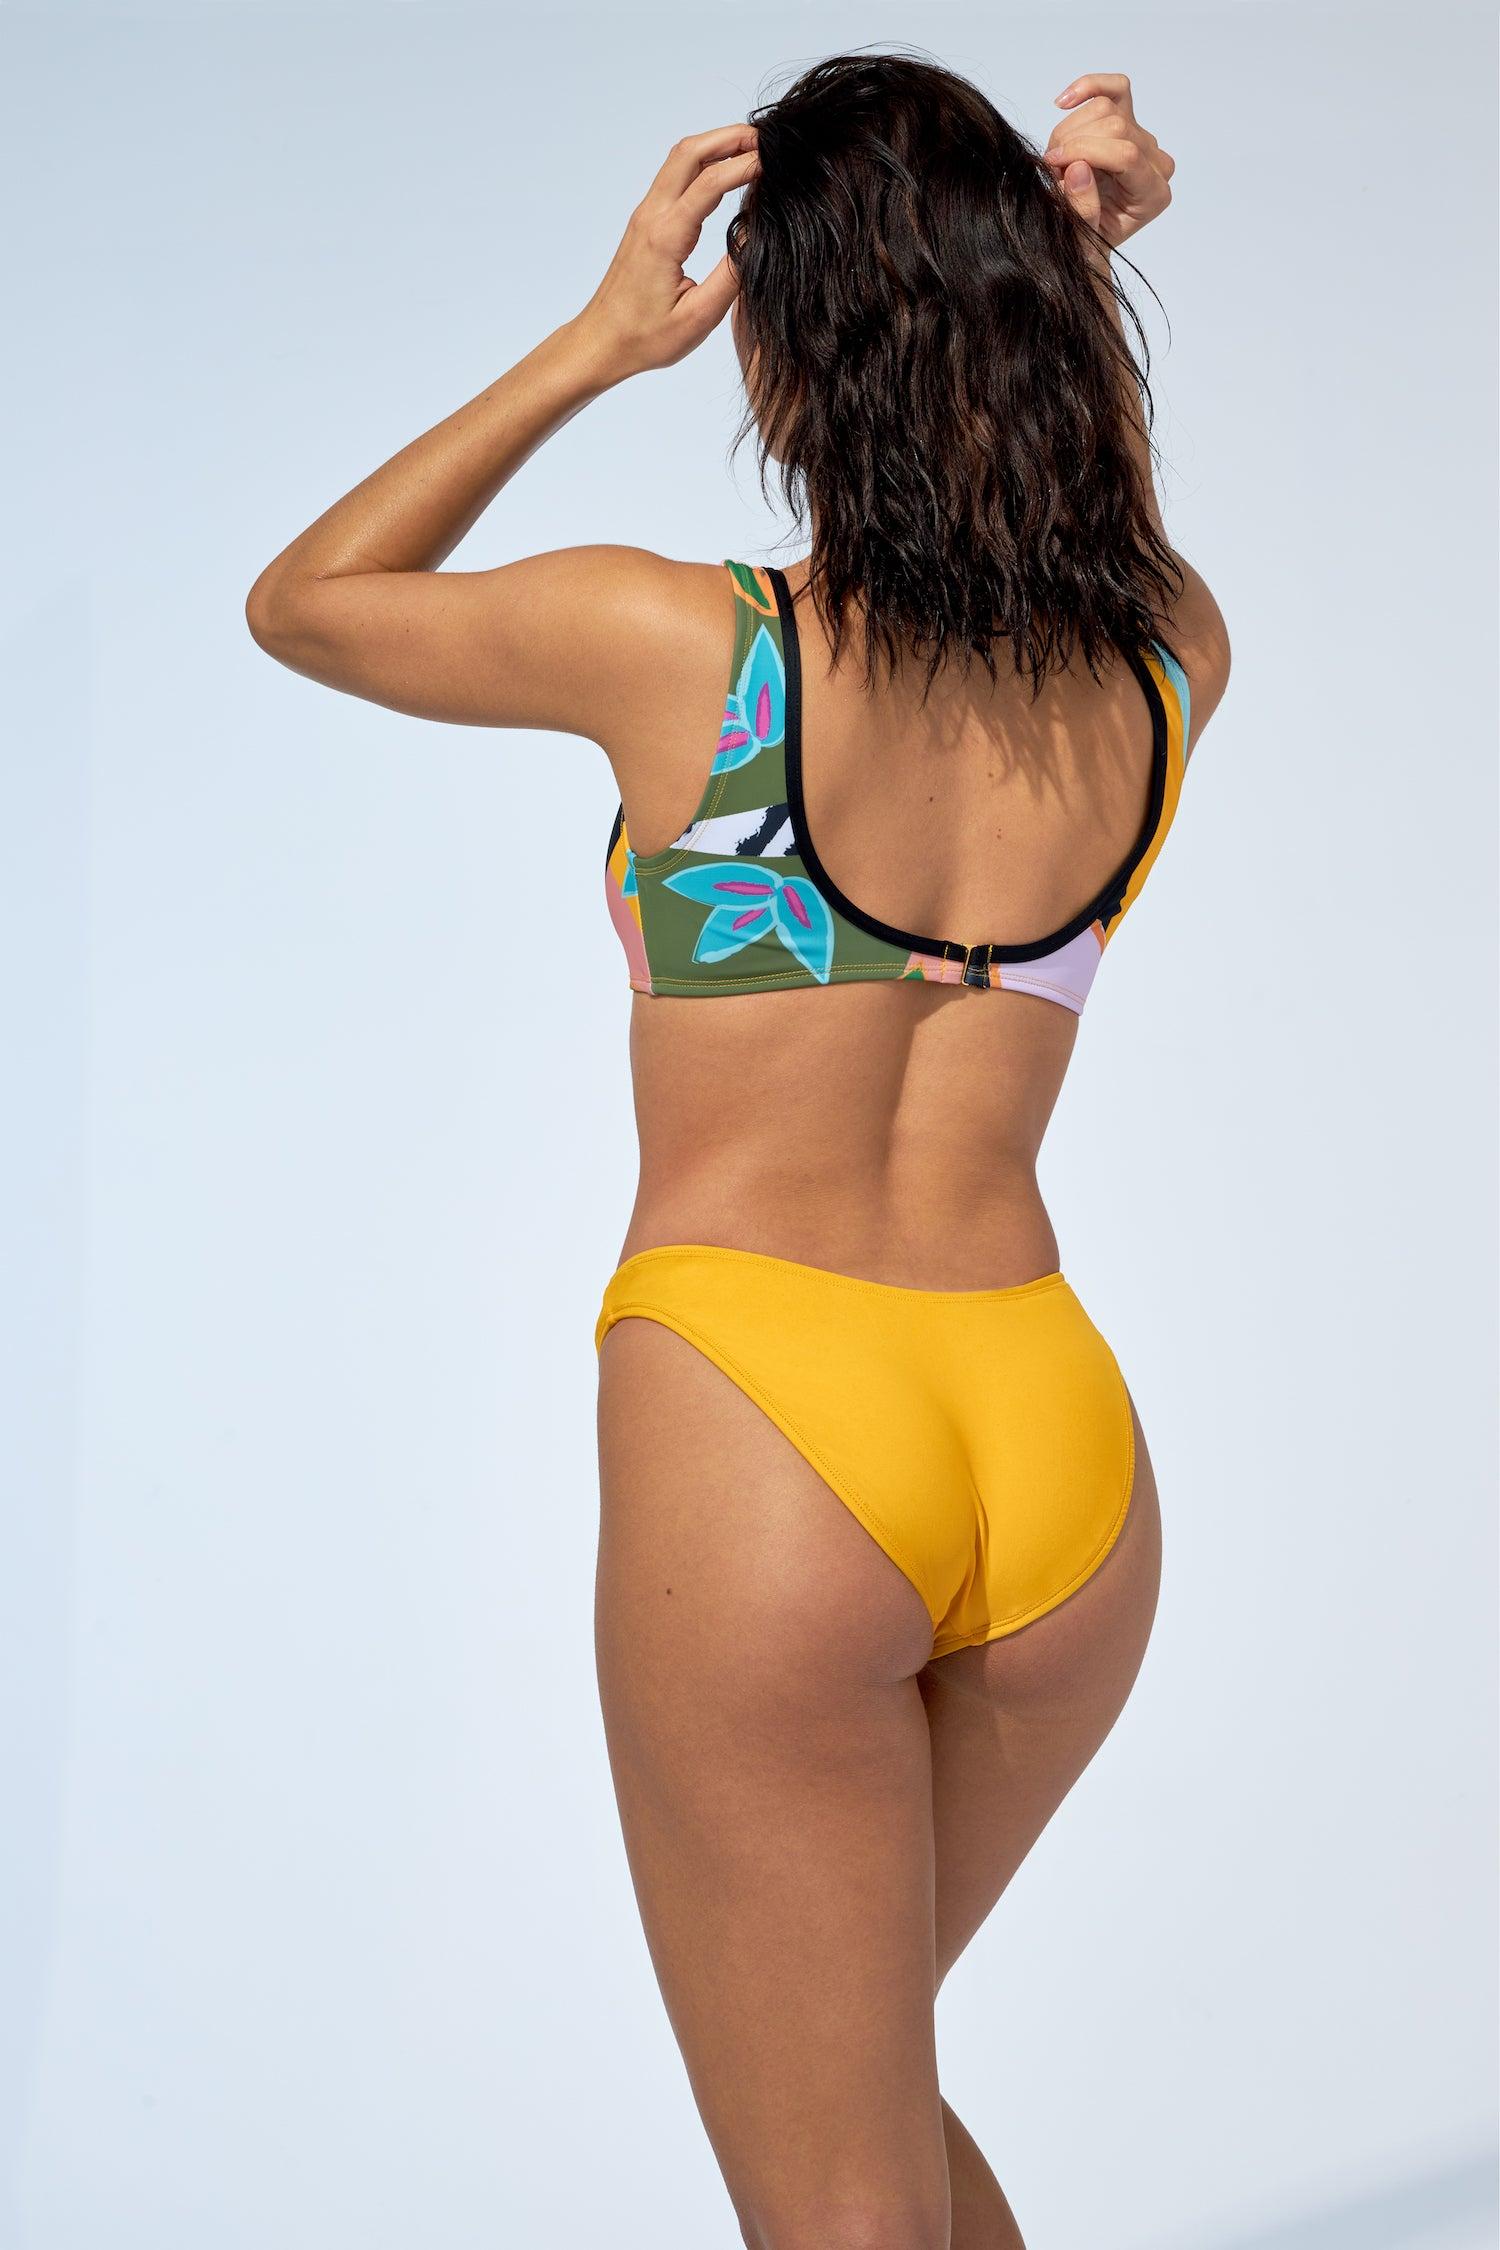 Women tropical print sport bikini top and an indented low rise bikini bottom in yellow.